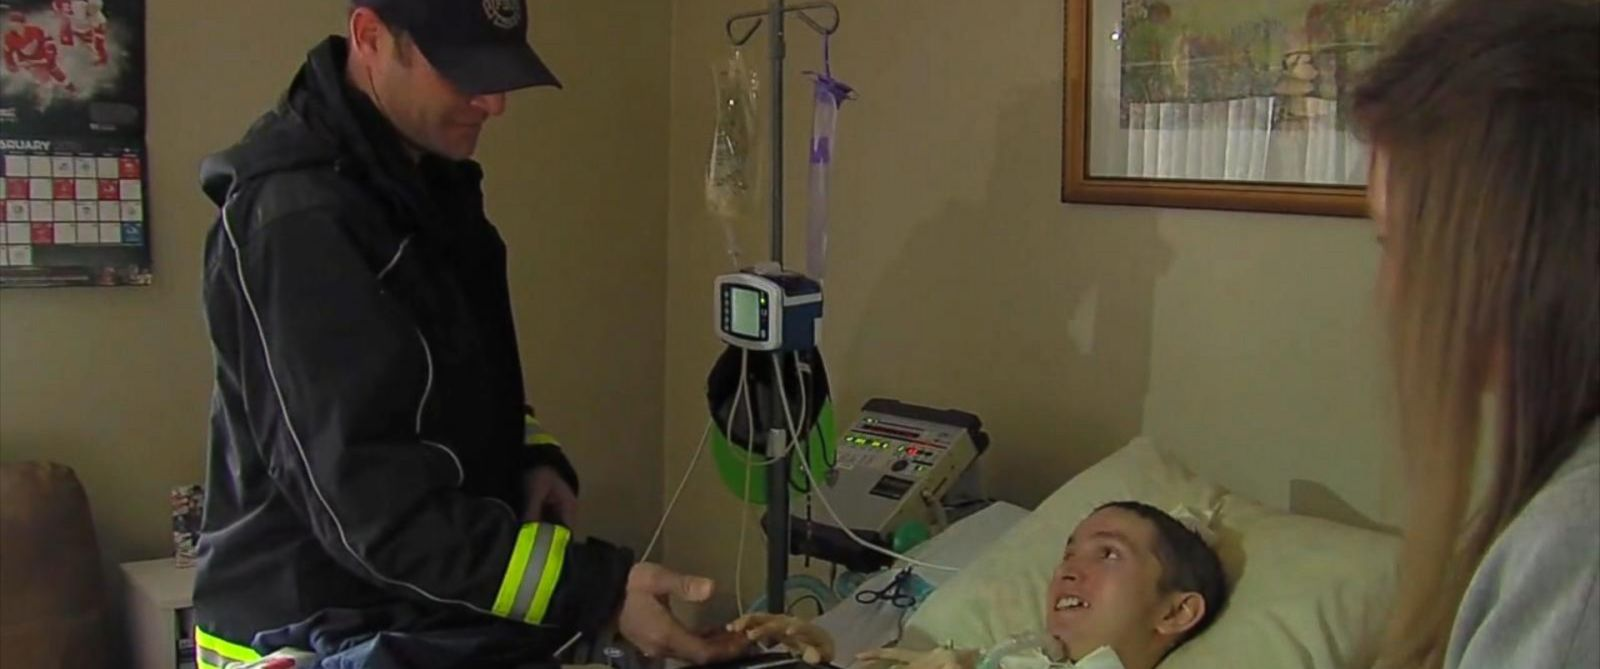 PHOTO: Firefighter Ryan McCuen, left, visiting with Troy Stone. McCuen paid the families electric bill when he responded to a call at their home and realized that Troys ventilator was not working because the power had been turned off.